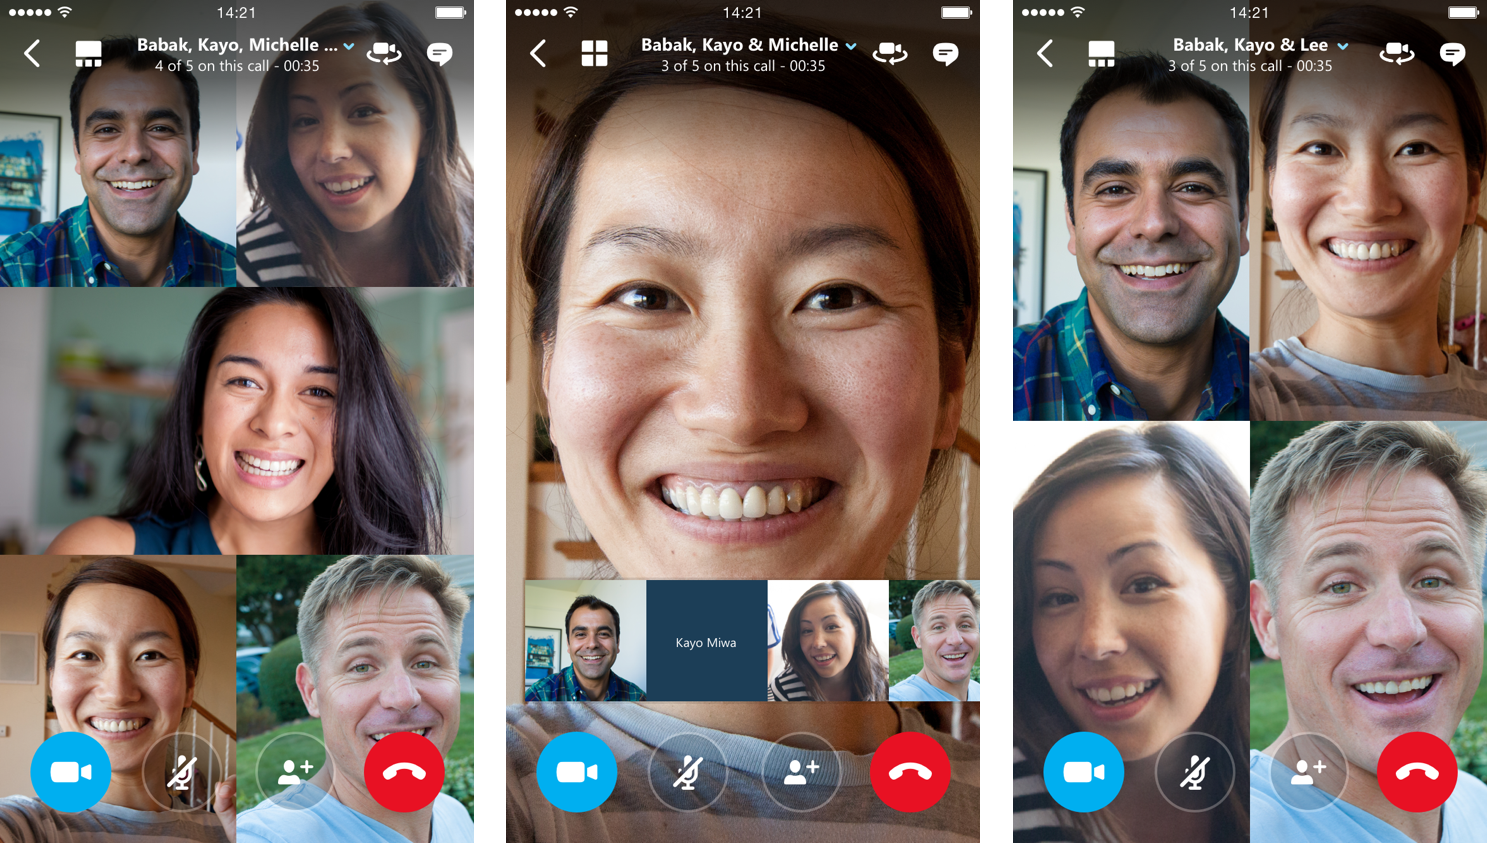 Skype's Android and iOS apps let you video chat with 24 other people